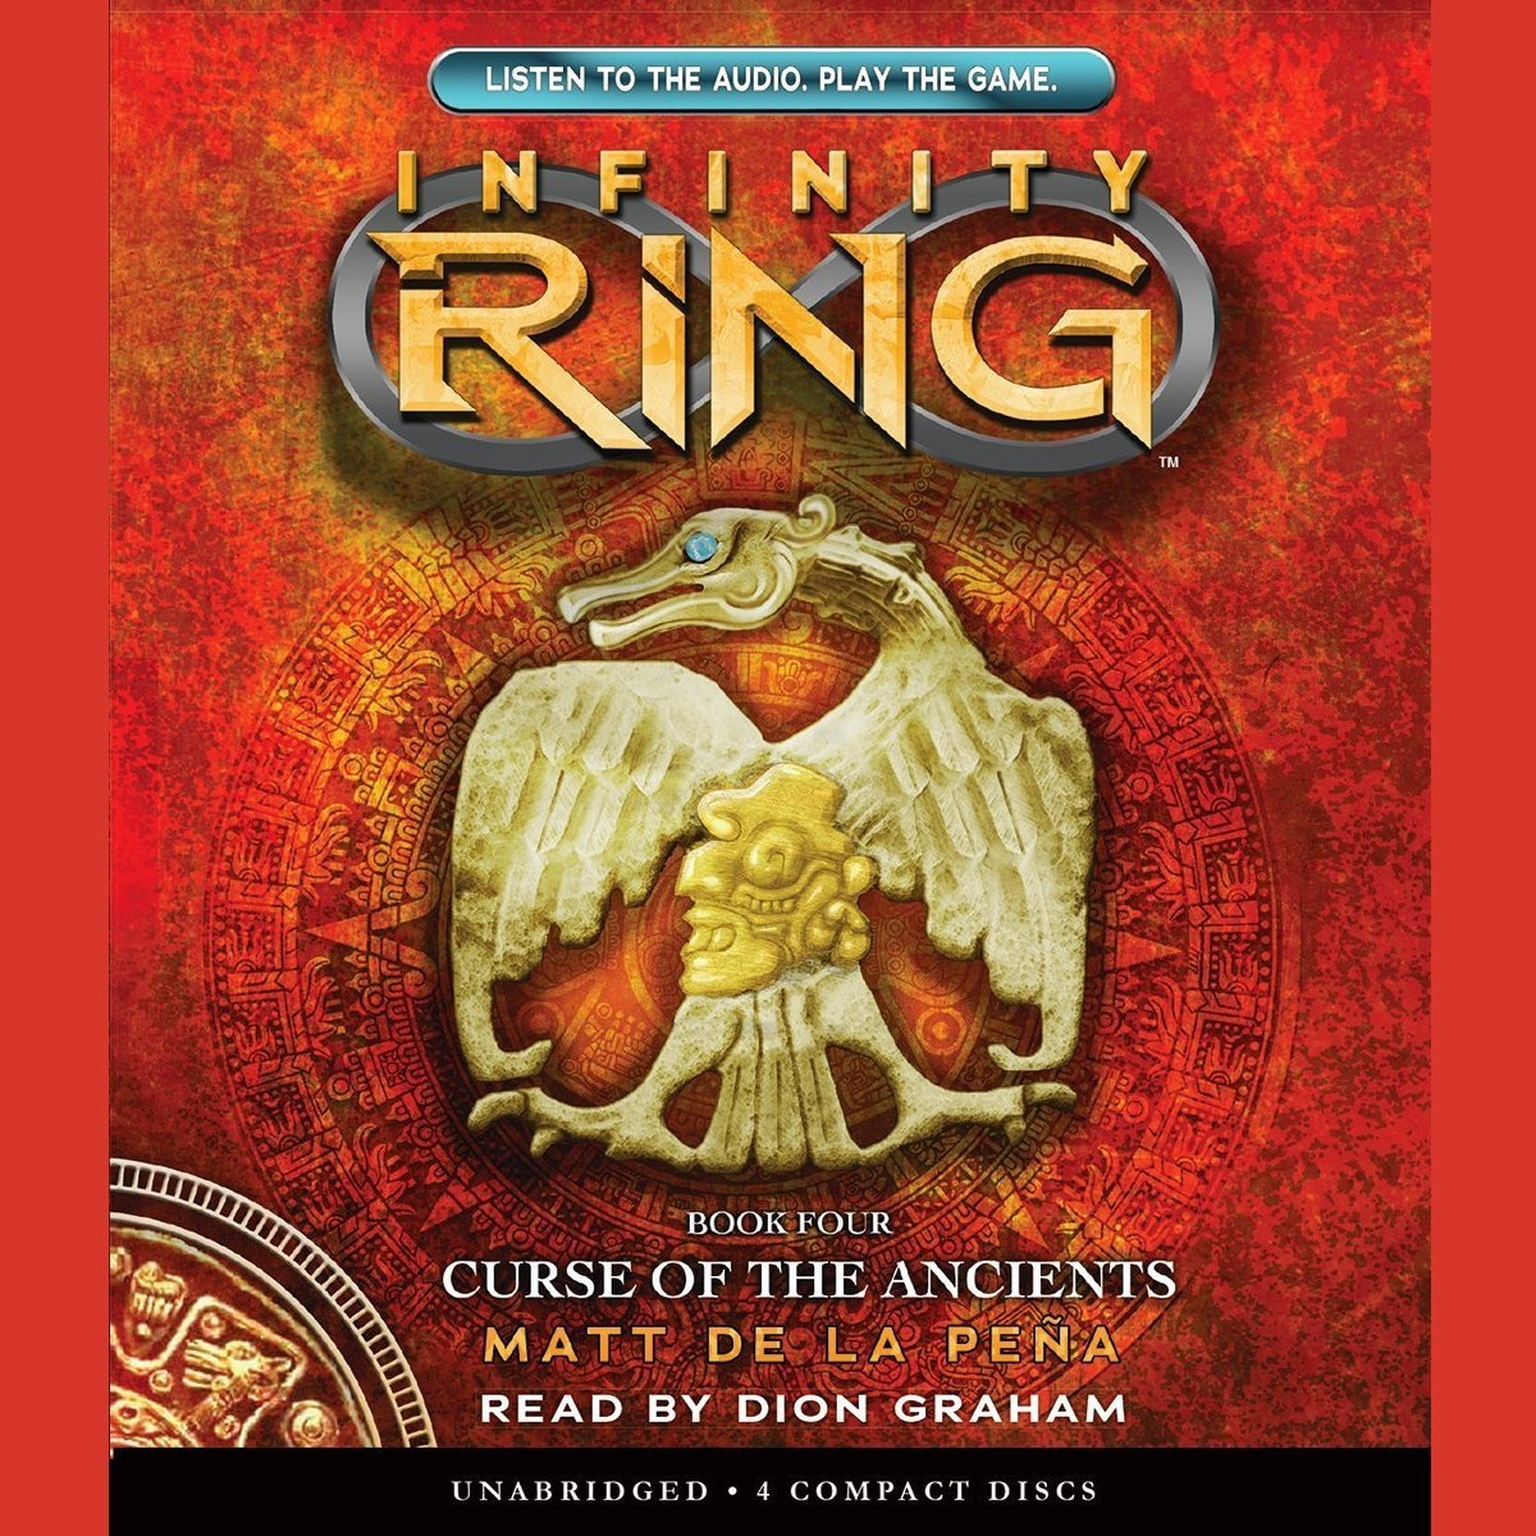 Printable Curse of the Ancients Audiobook Cover Art